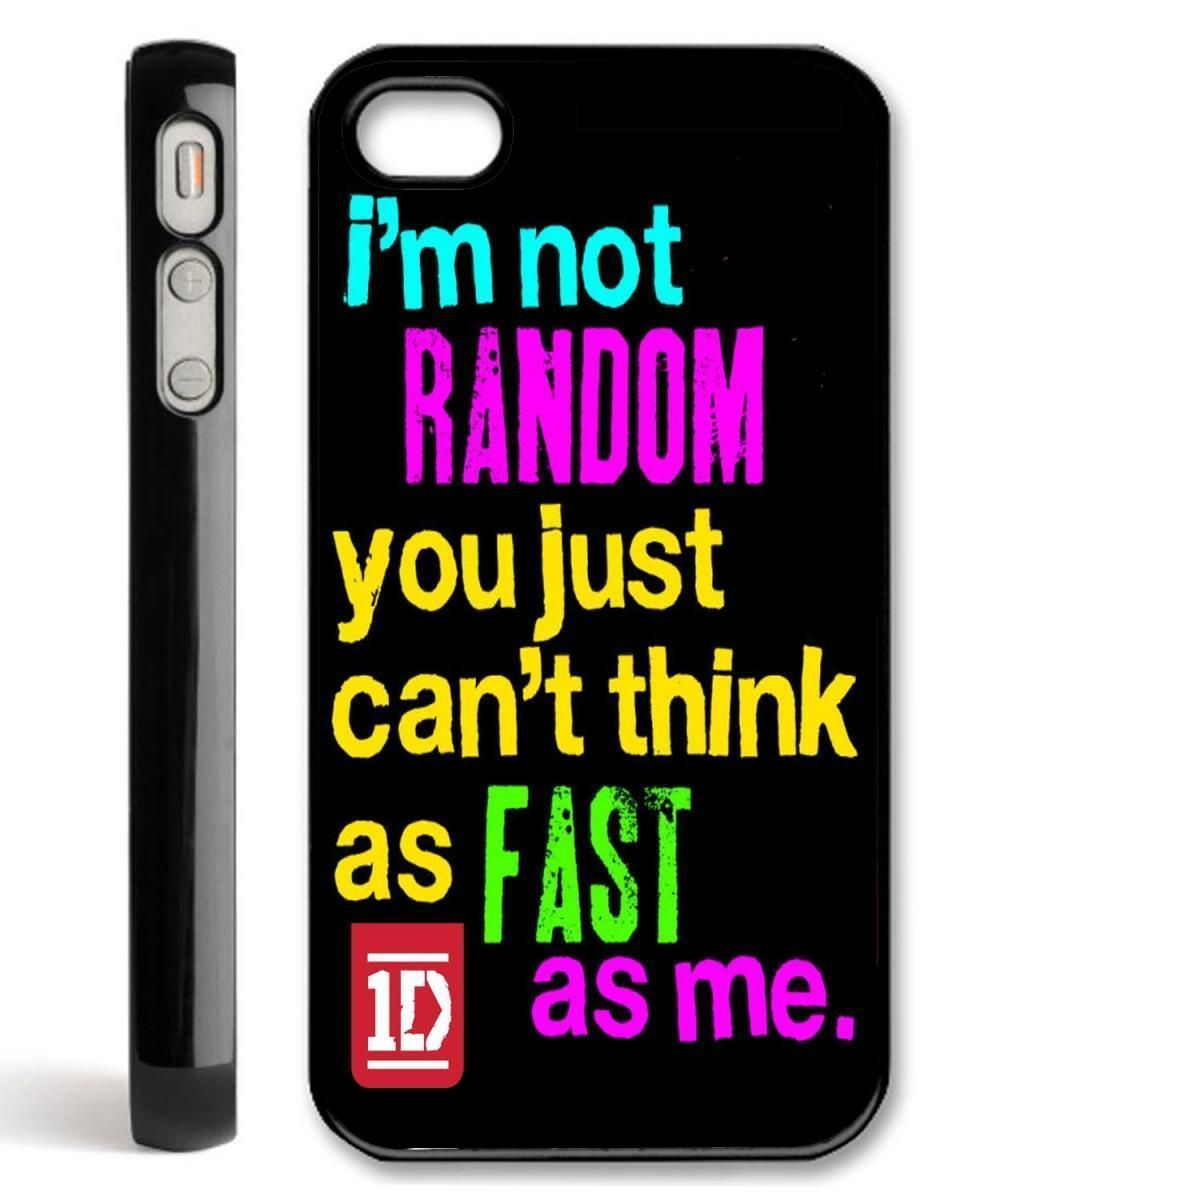 one direction quotes iphone 4 case I so want this!!!! #directionquotes one direction quotes iphone 4 case I so want this!!!! #onedirectionbackground one direction quotes iphone 4 case I so want this!!!! #directionquotes one direction quotes iphone 4 case I so want this!!!! #onedirectionbackground one direction quotes iphone 4 case I so want this!!!! #directionquotes one direction quotes iphone 4 case I so want this!!!! #onedirectionbackground one direction quotes iphone 4 case I so want this!!!! #onedirectionbackground